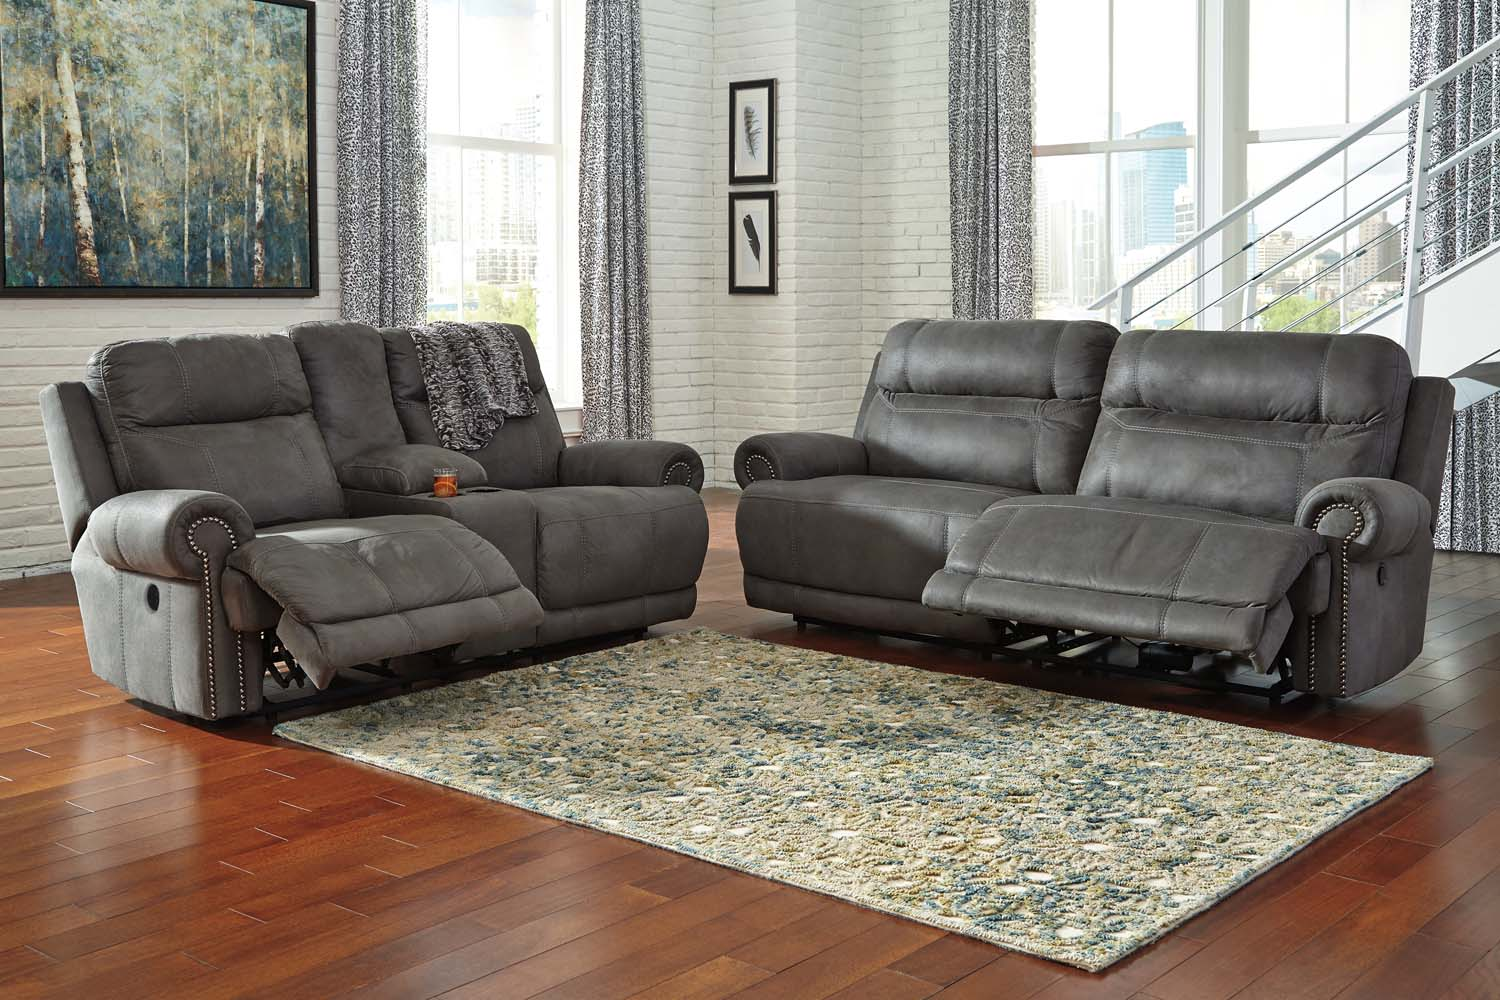 Hidden · Additional 2 Seat Reclining Sofa : 2 seat reclining sofa - islam-shia.org